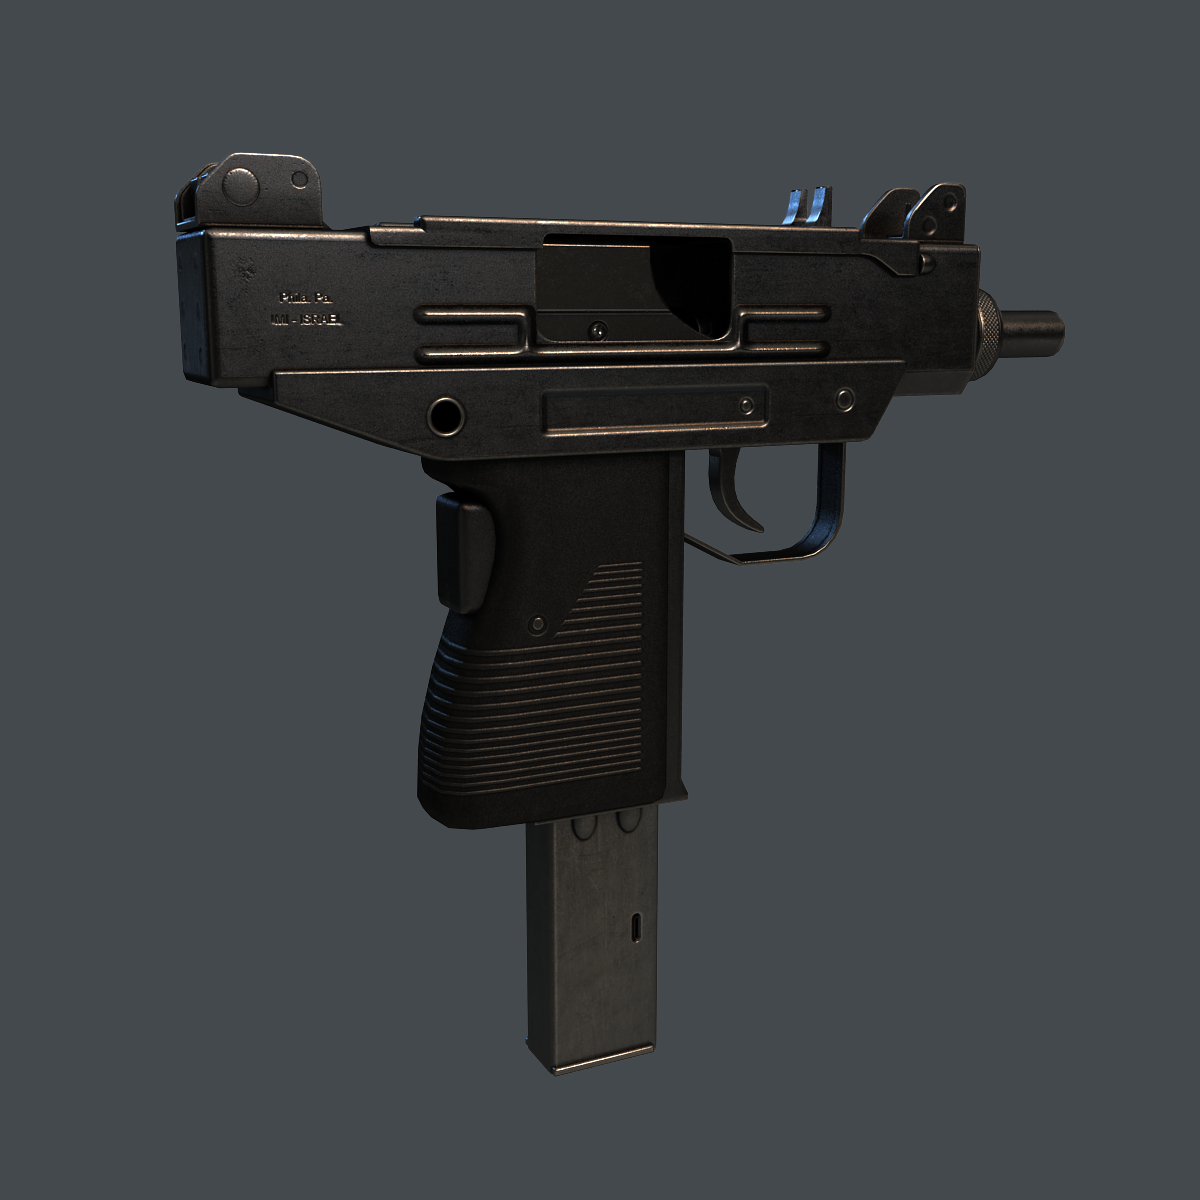 Micro Uzi Smg By Drumdorf 3docean